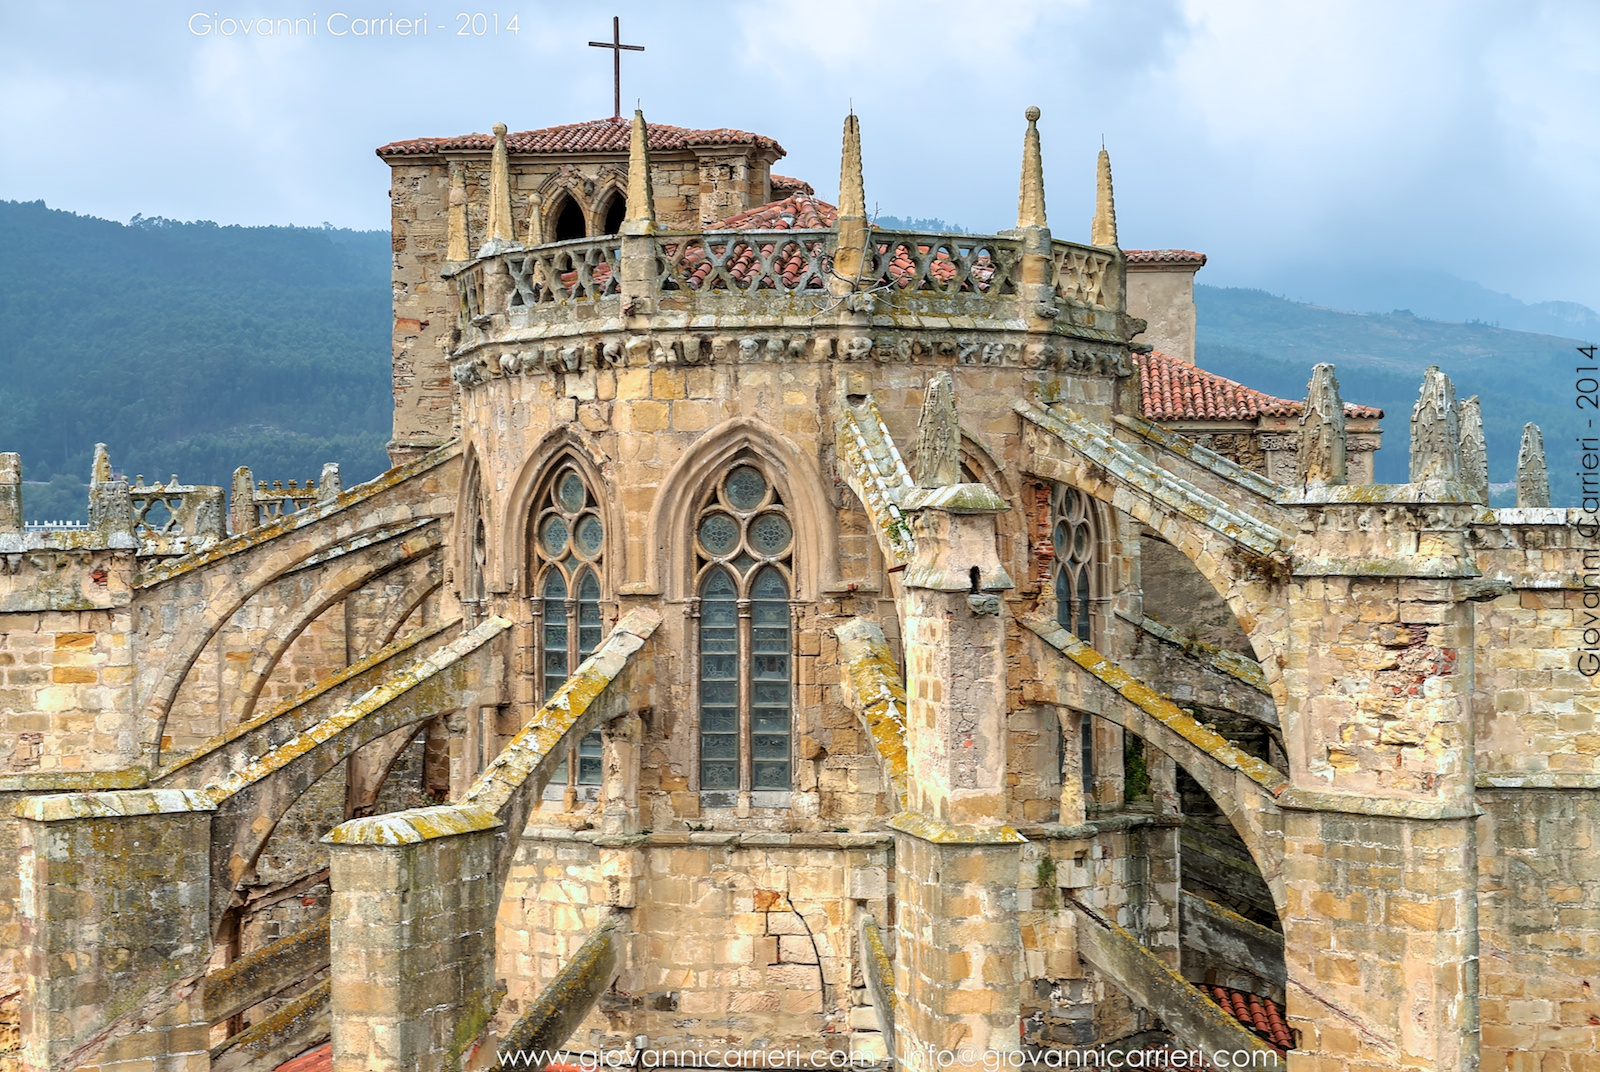 St. Mary of the Assumption - Castro Urdiales Spain